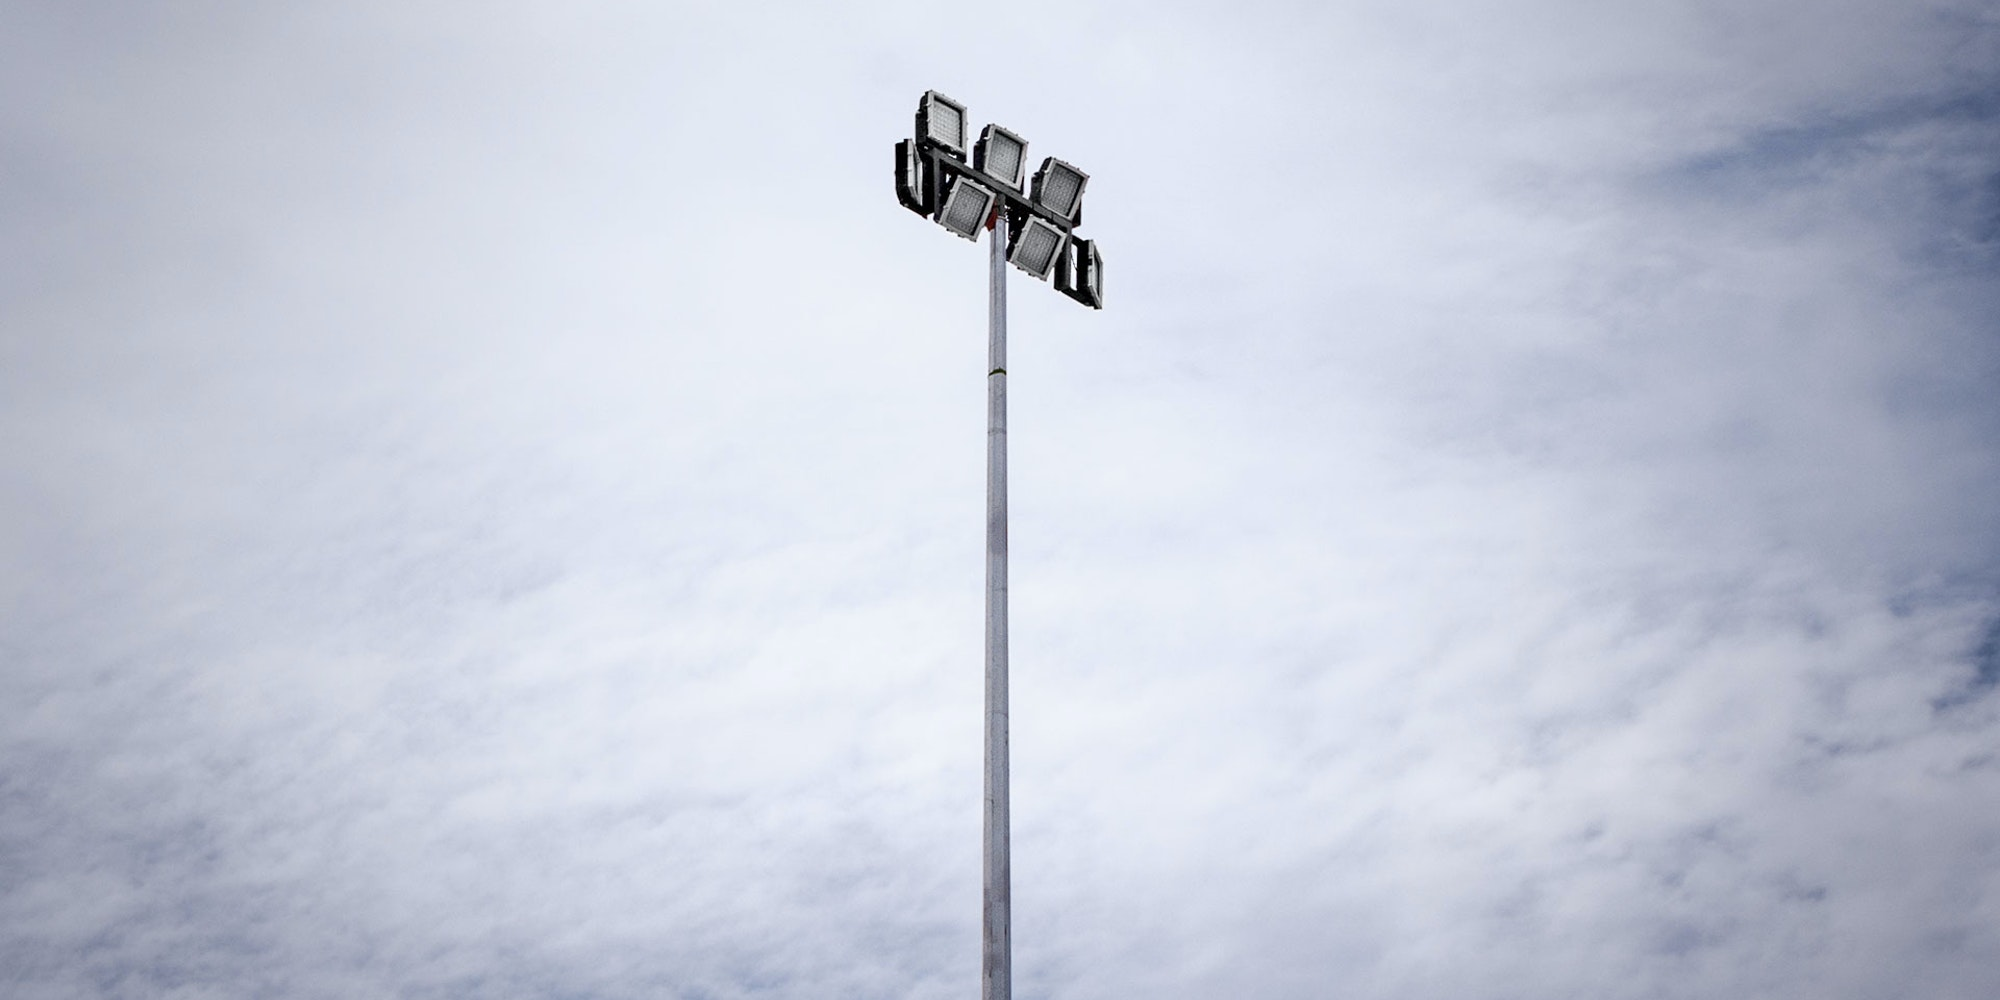 CP66 LED Flood Light in application, installed on a high mast pole on an industrial /  mine site